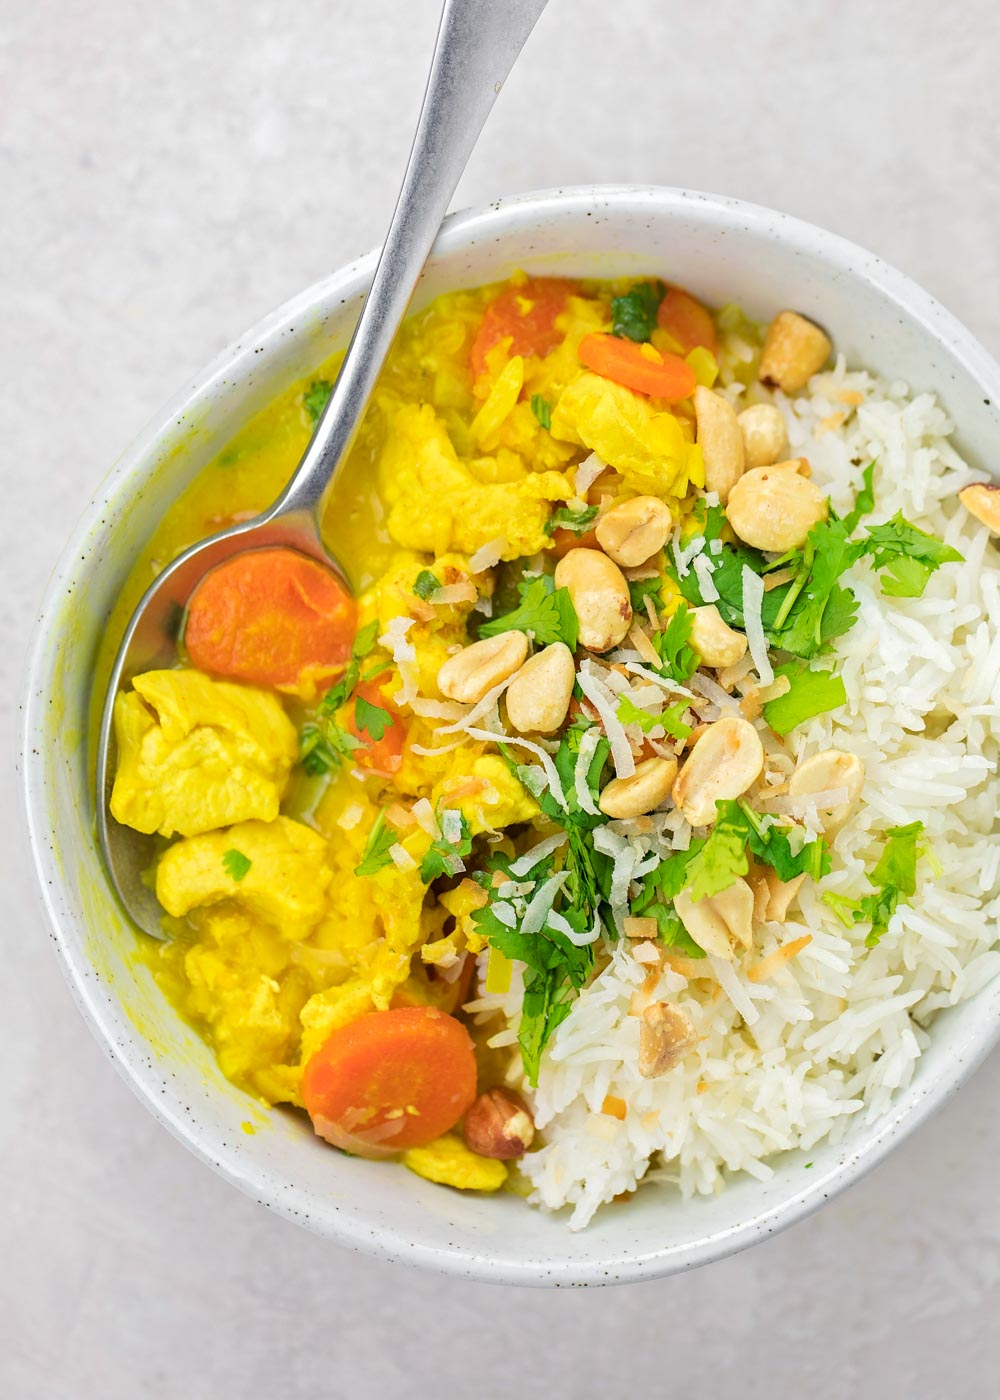 Coconut lentil curry in a bowl with white rice